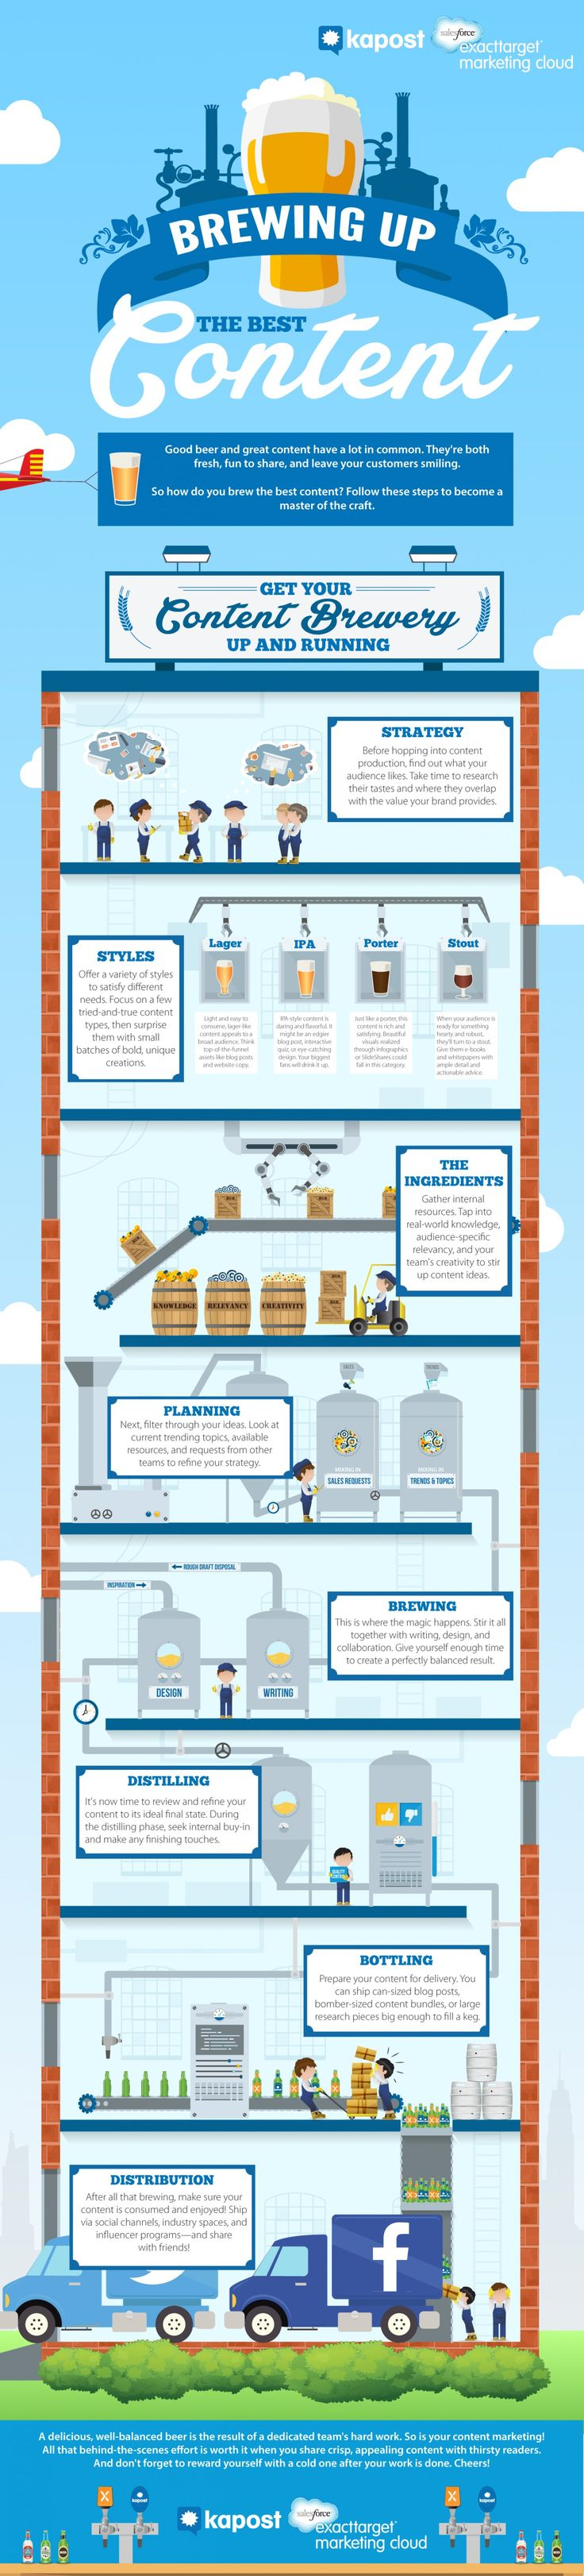 #infographic: Brewing Up the Best #Content. #ContentMarketing